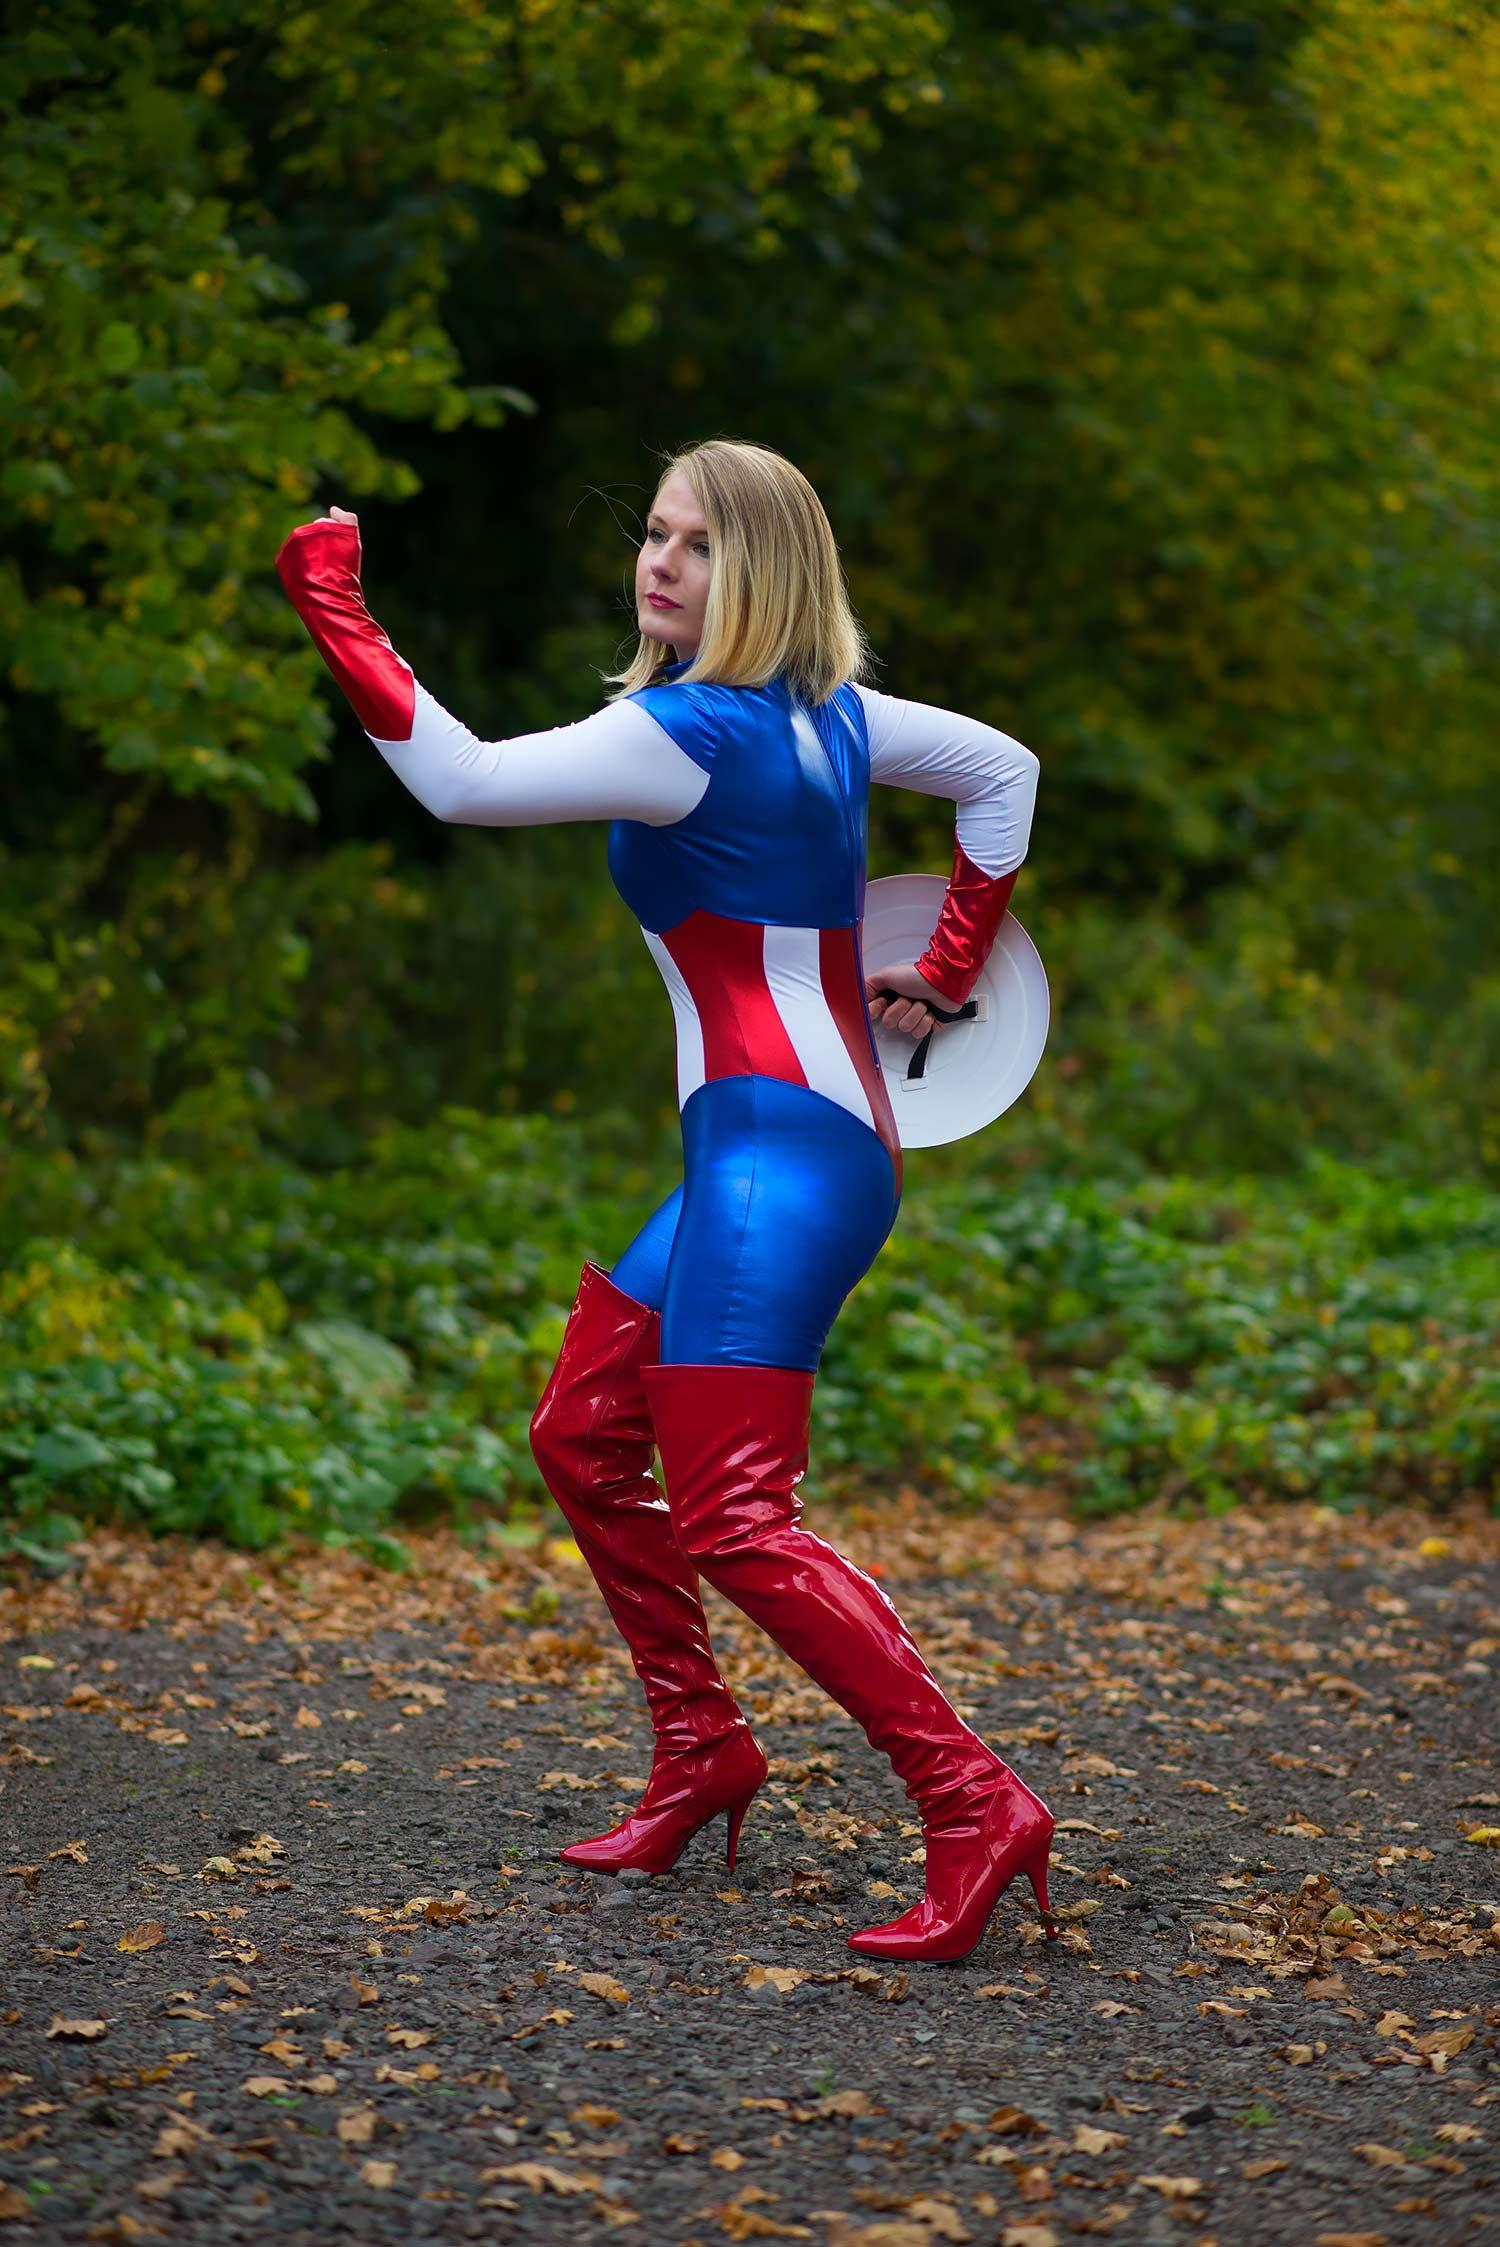 lorna-burford-miss-captain-america-costume-girl-7